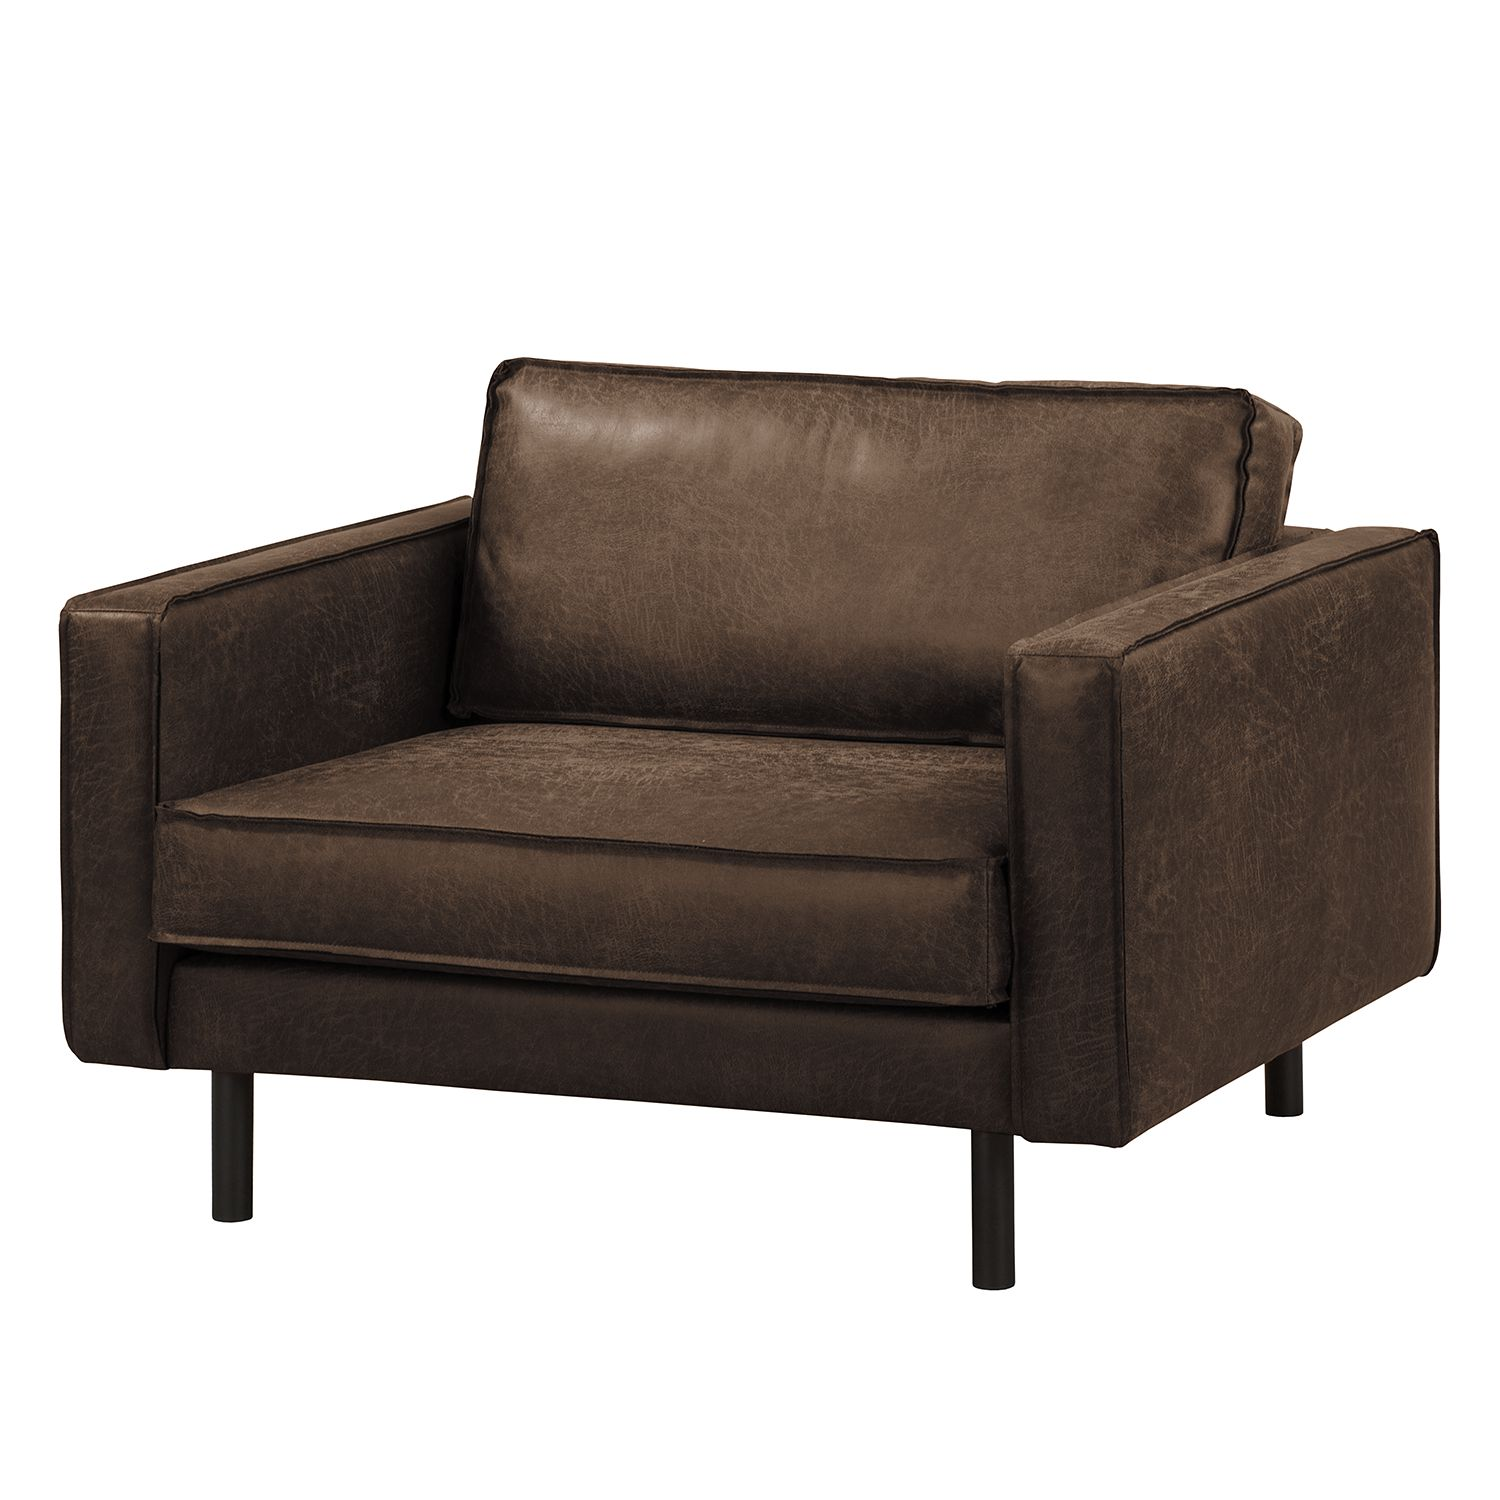 Home24 XXL-fauteuil Fort Dodge antieke leerlook, ars manufacti